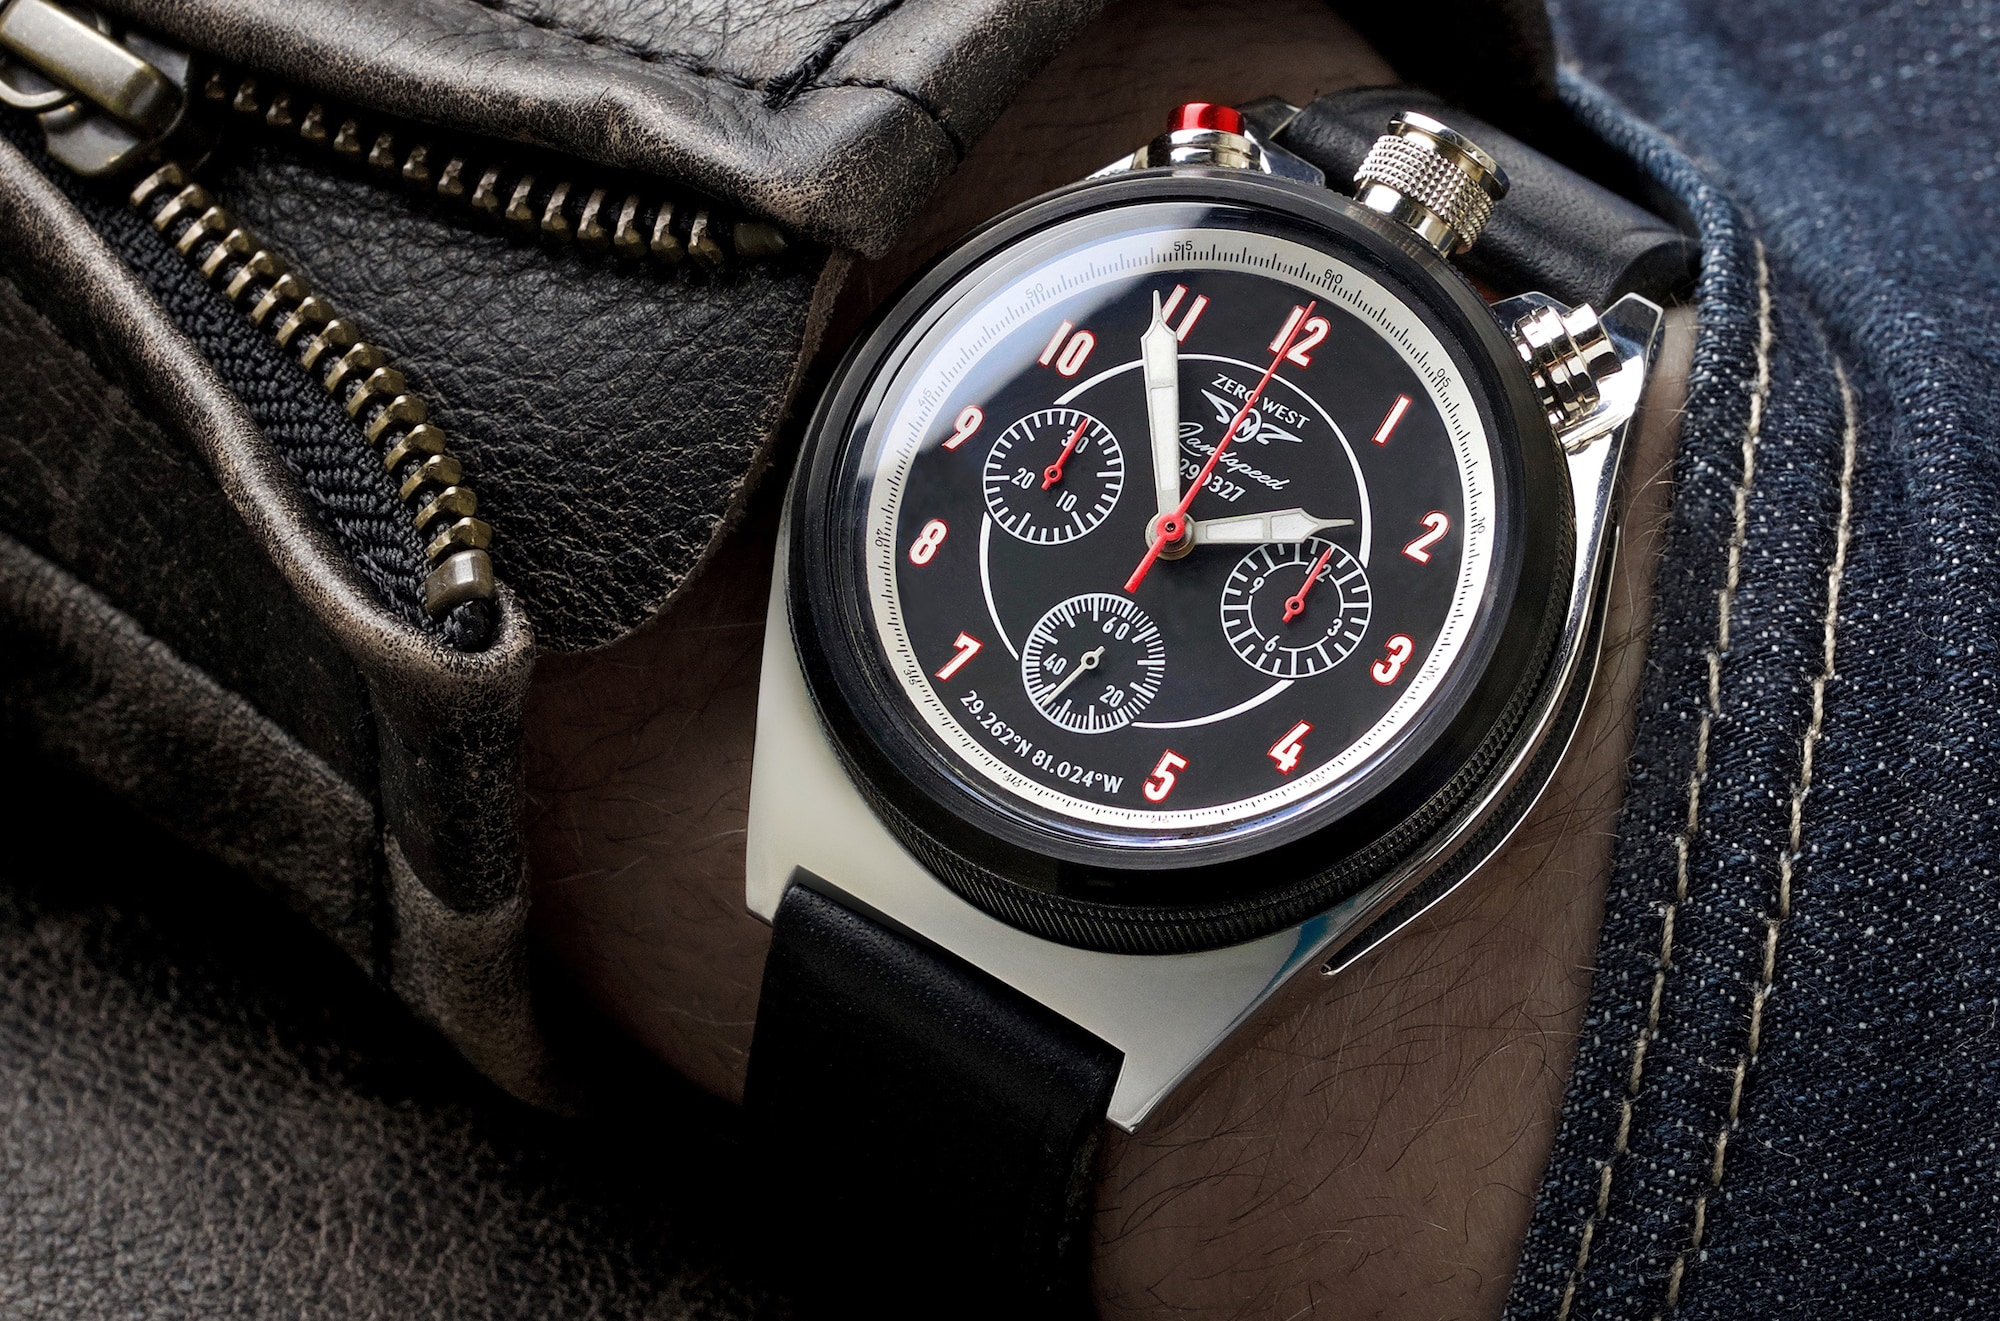 LS1 land speed bullhead chronograph on the wrist with leather jacket